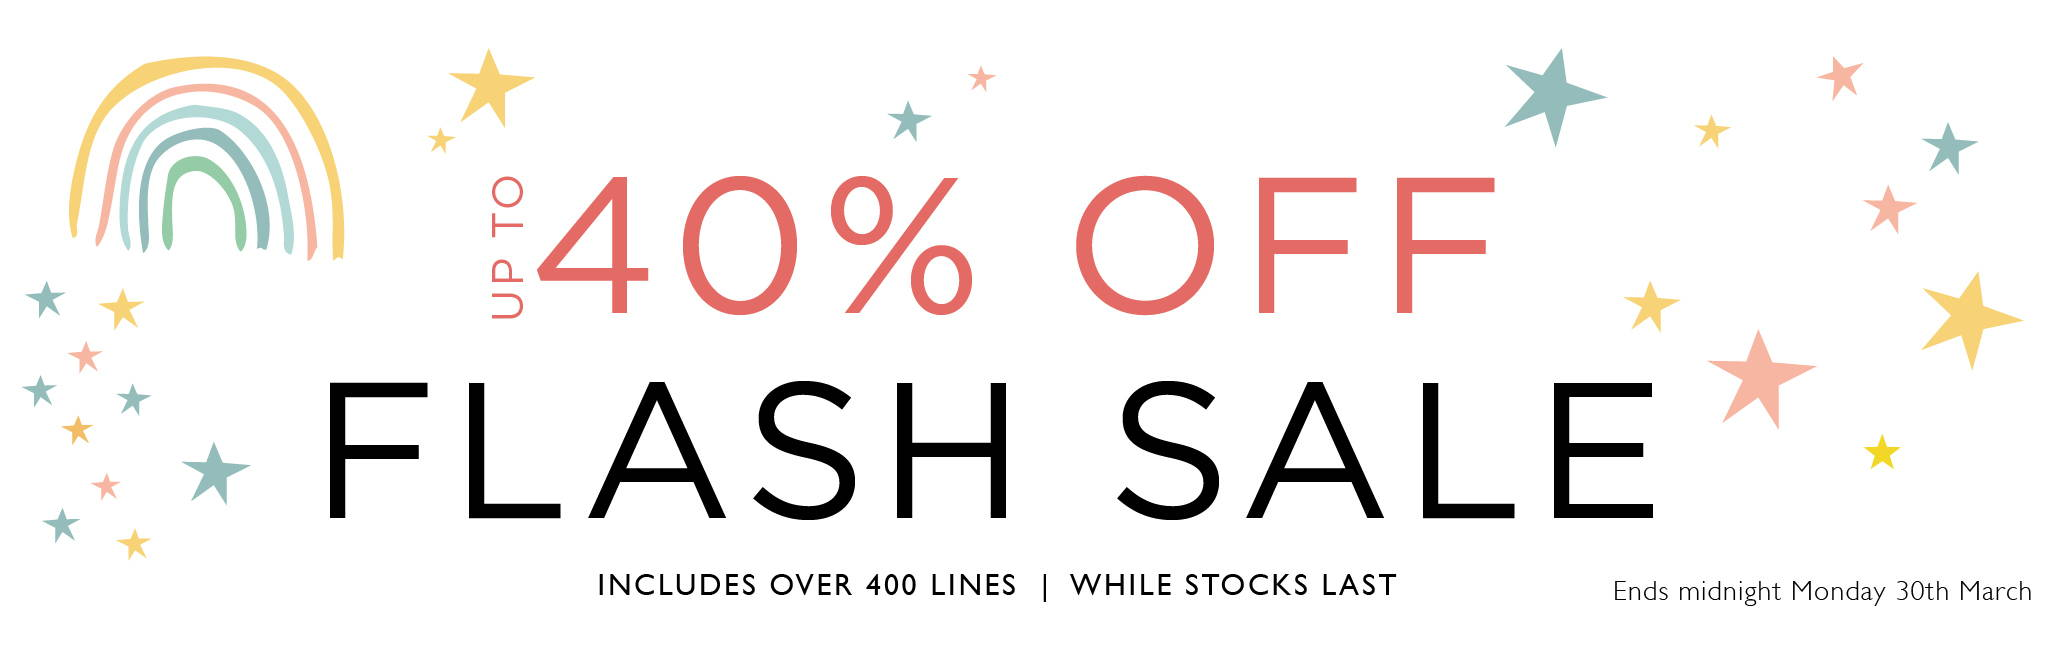 Up to 40% off Flash Sale